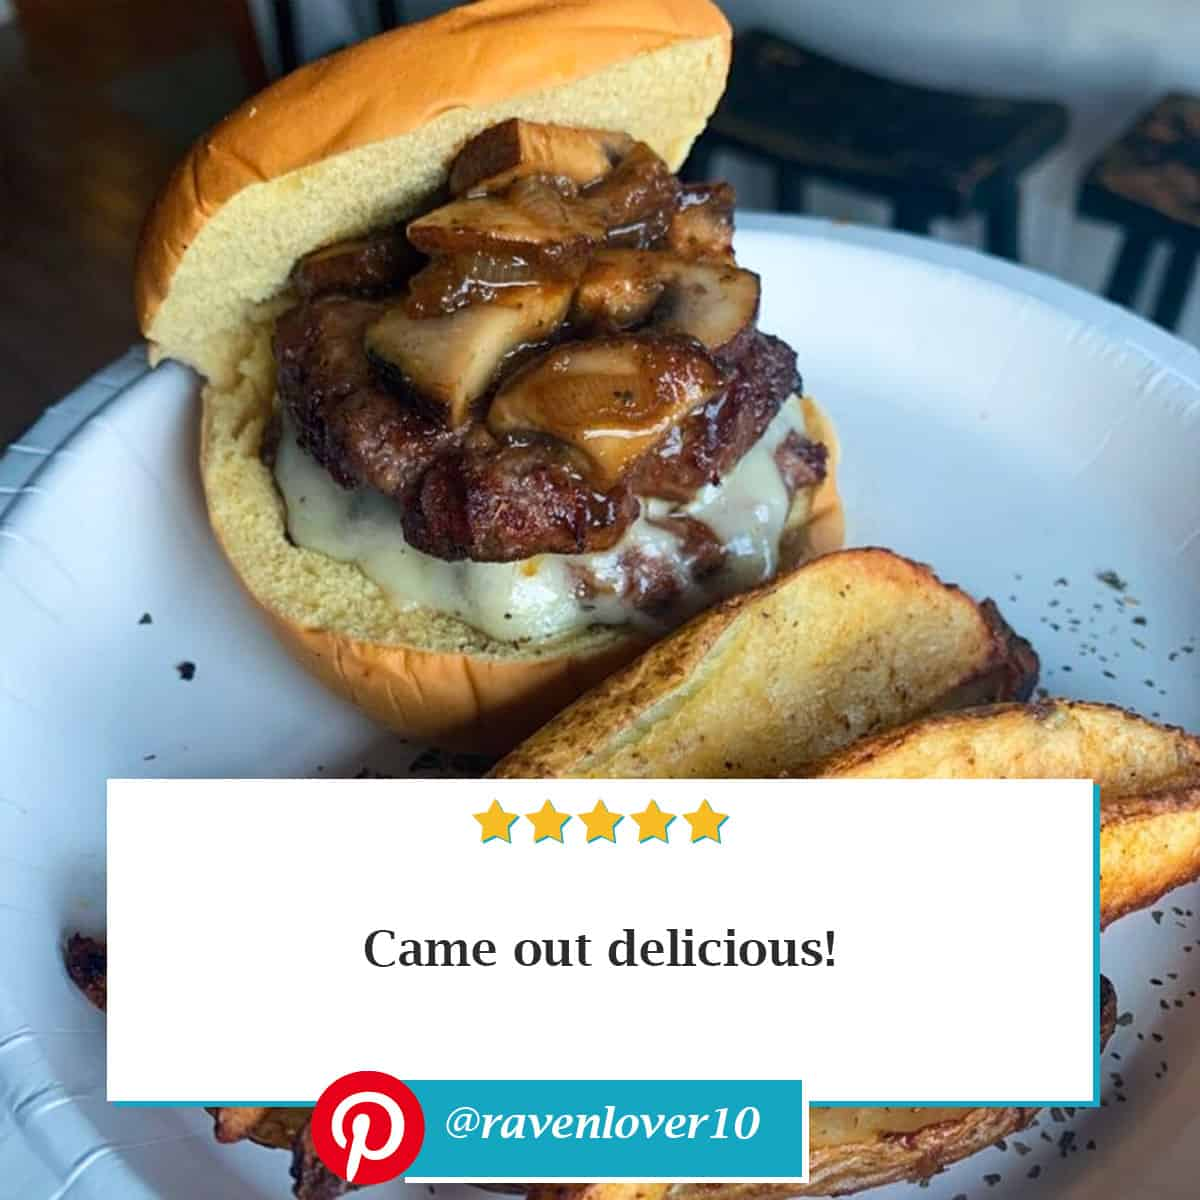 """Reviewer photo of Mushroom Swiss Burger on a white plate with potato fries and the text overlay: """"Came out delicious!"""" with their Pinterest username: @ravenlover10"""